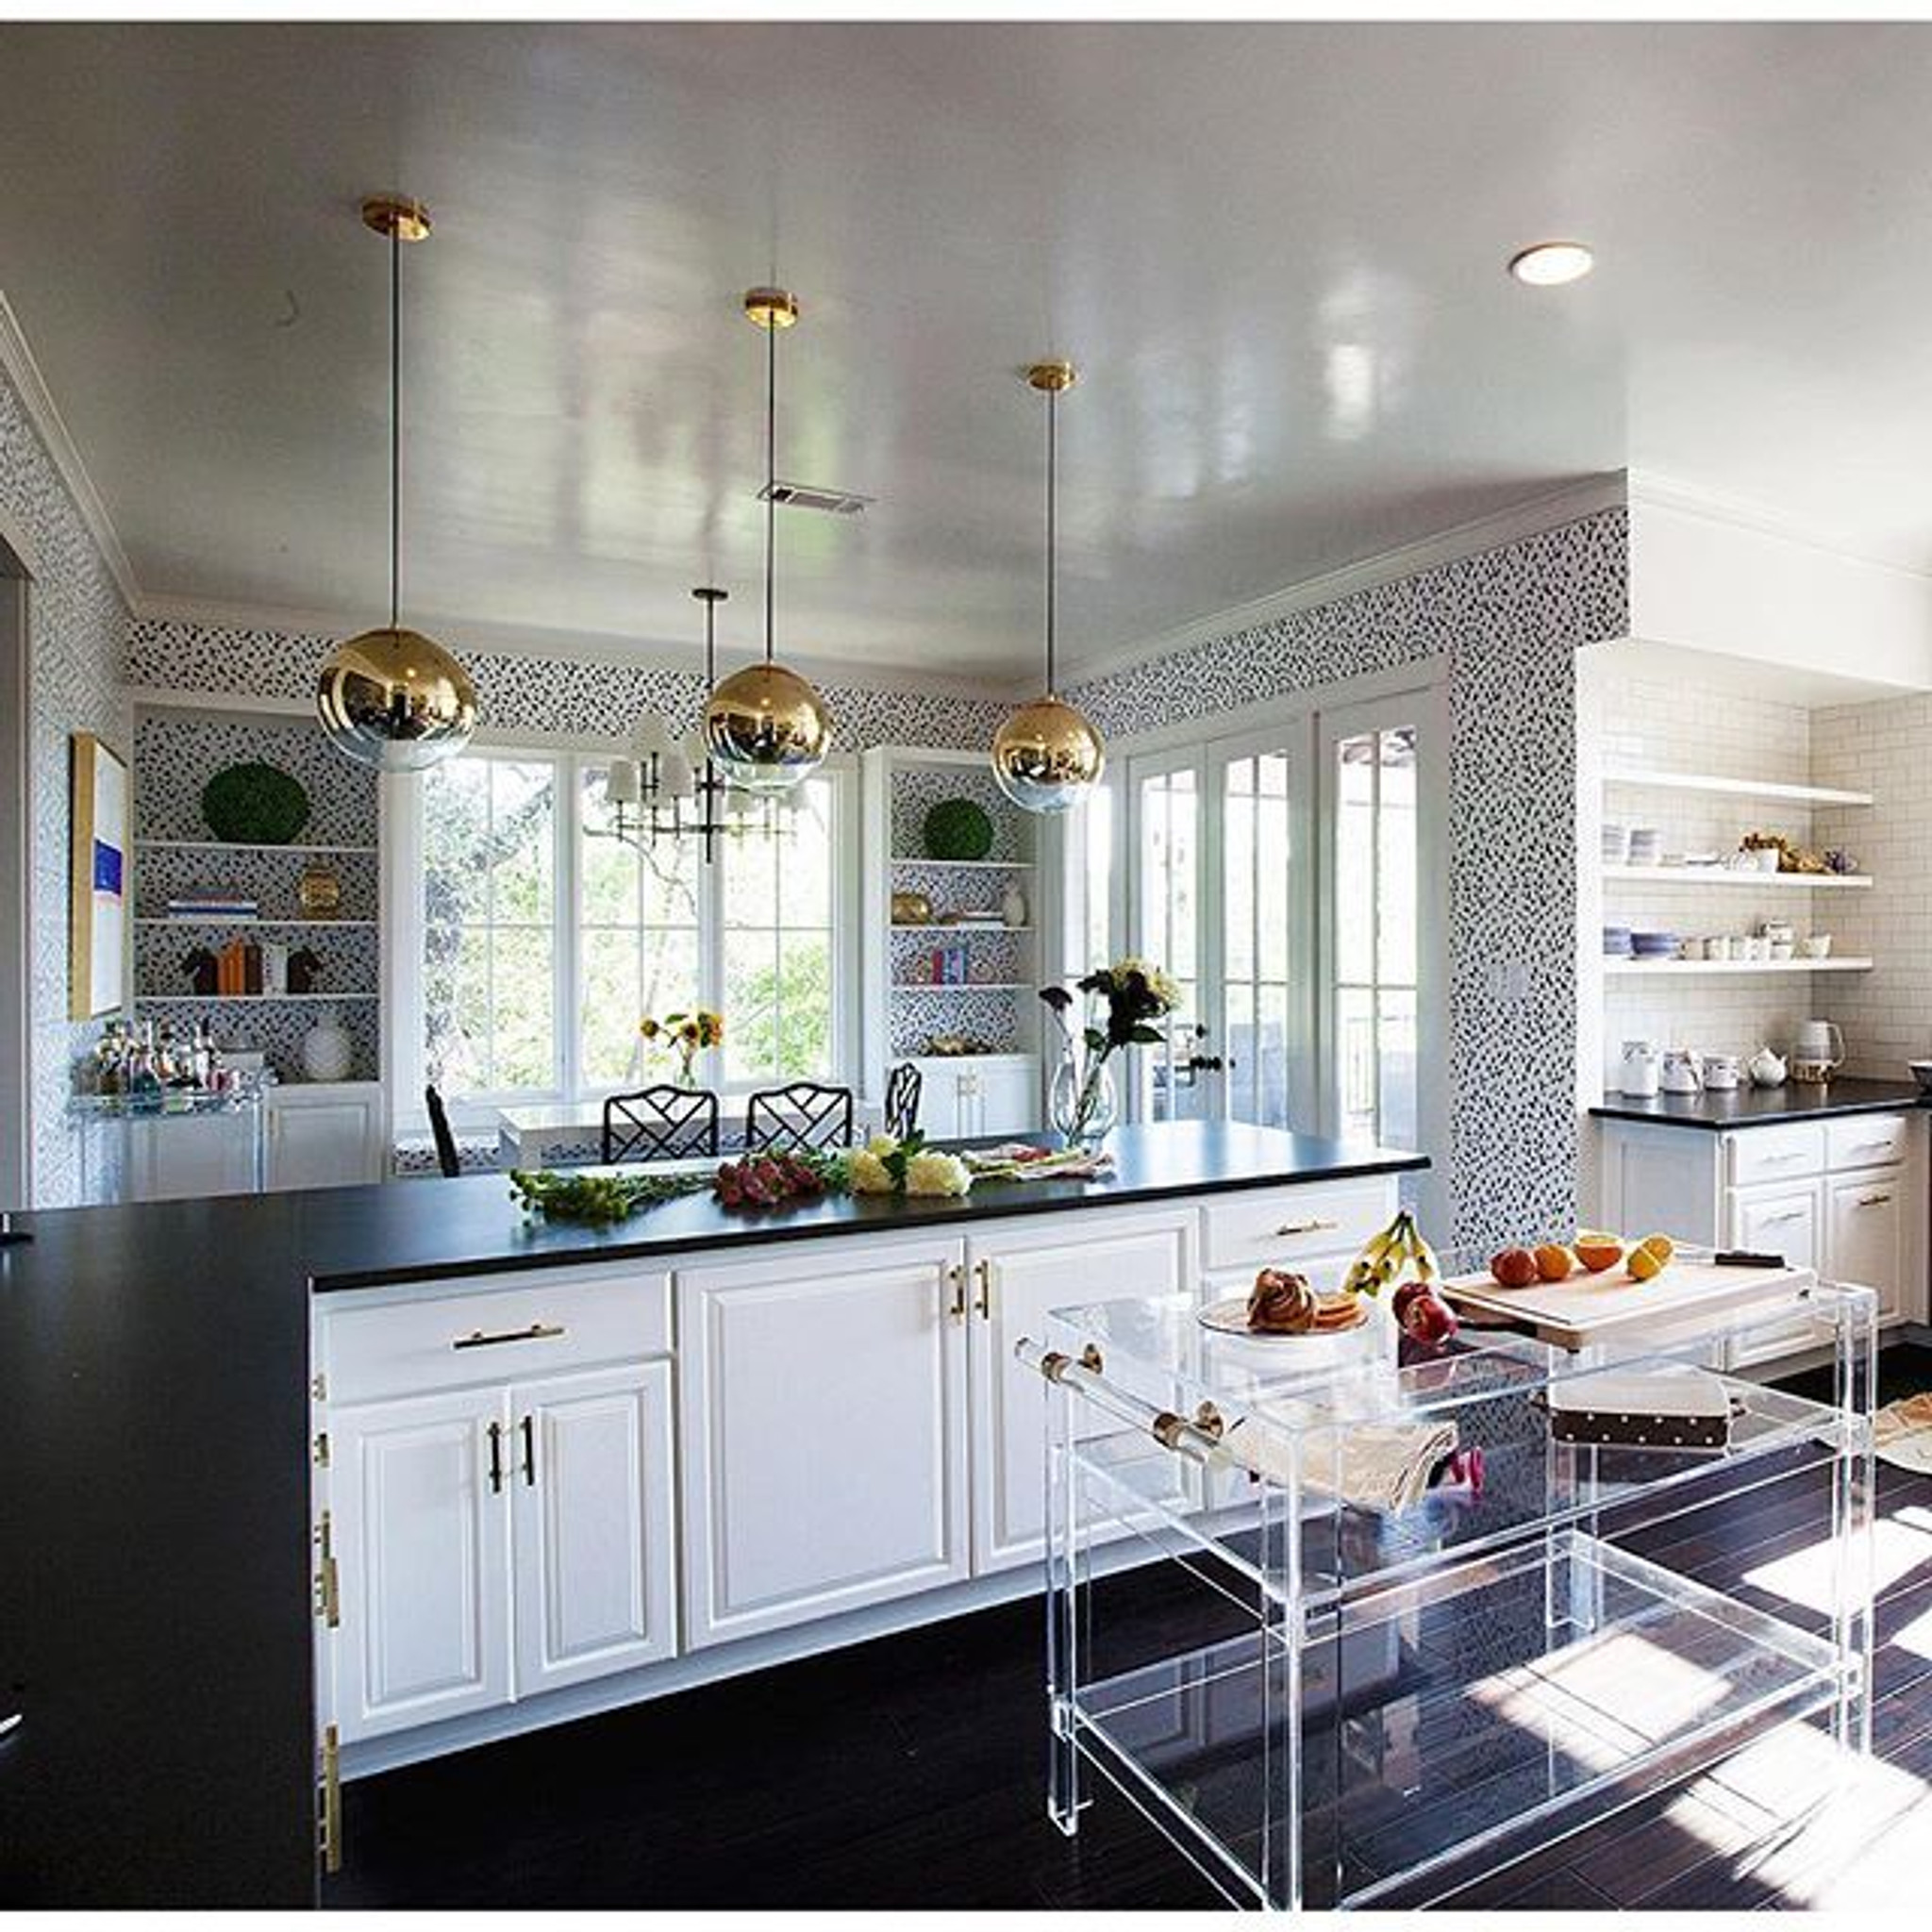 Custom Lucite Kitchen Island with Lucite Handle